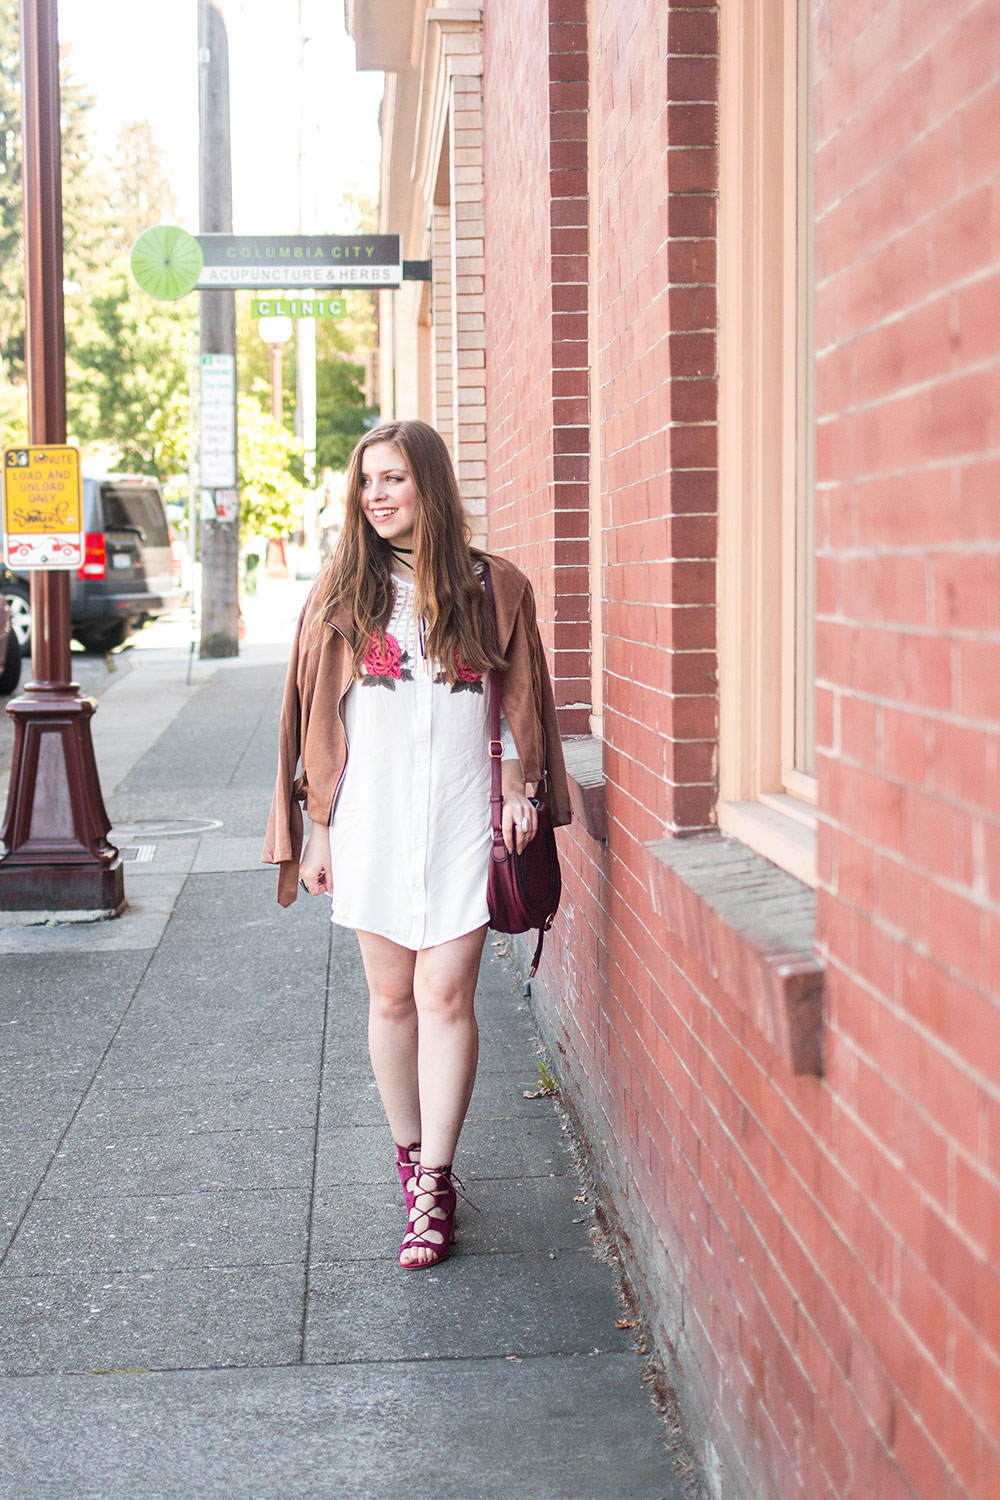 How to Dress in Columbia City Seattle // Hello Rigby Seattle Fashion Blog